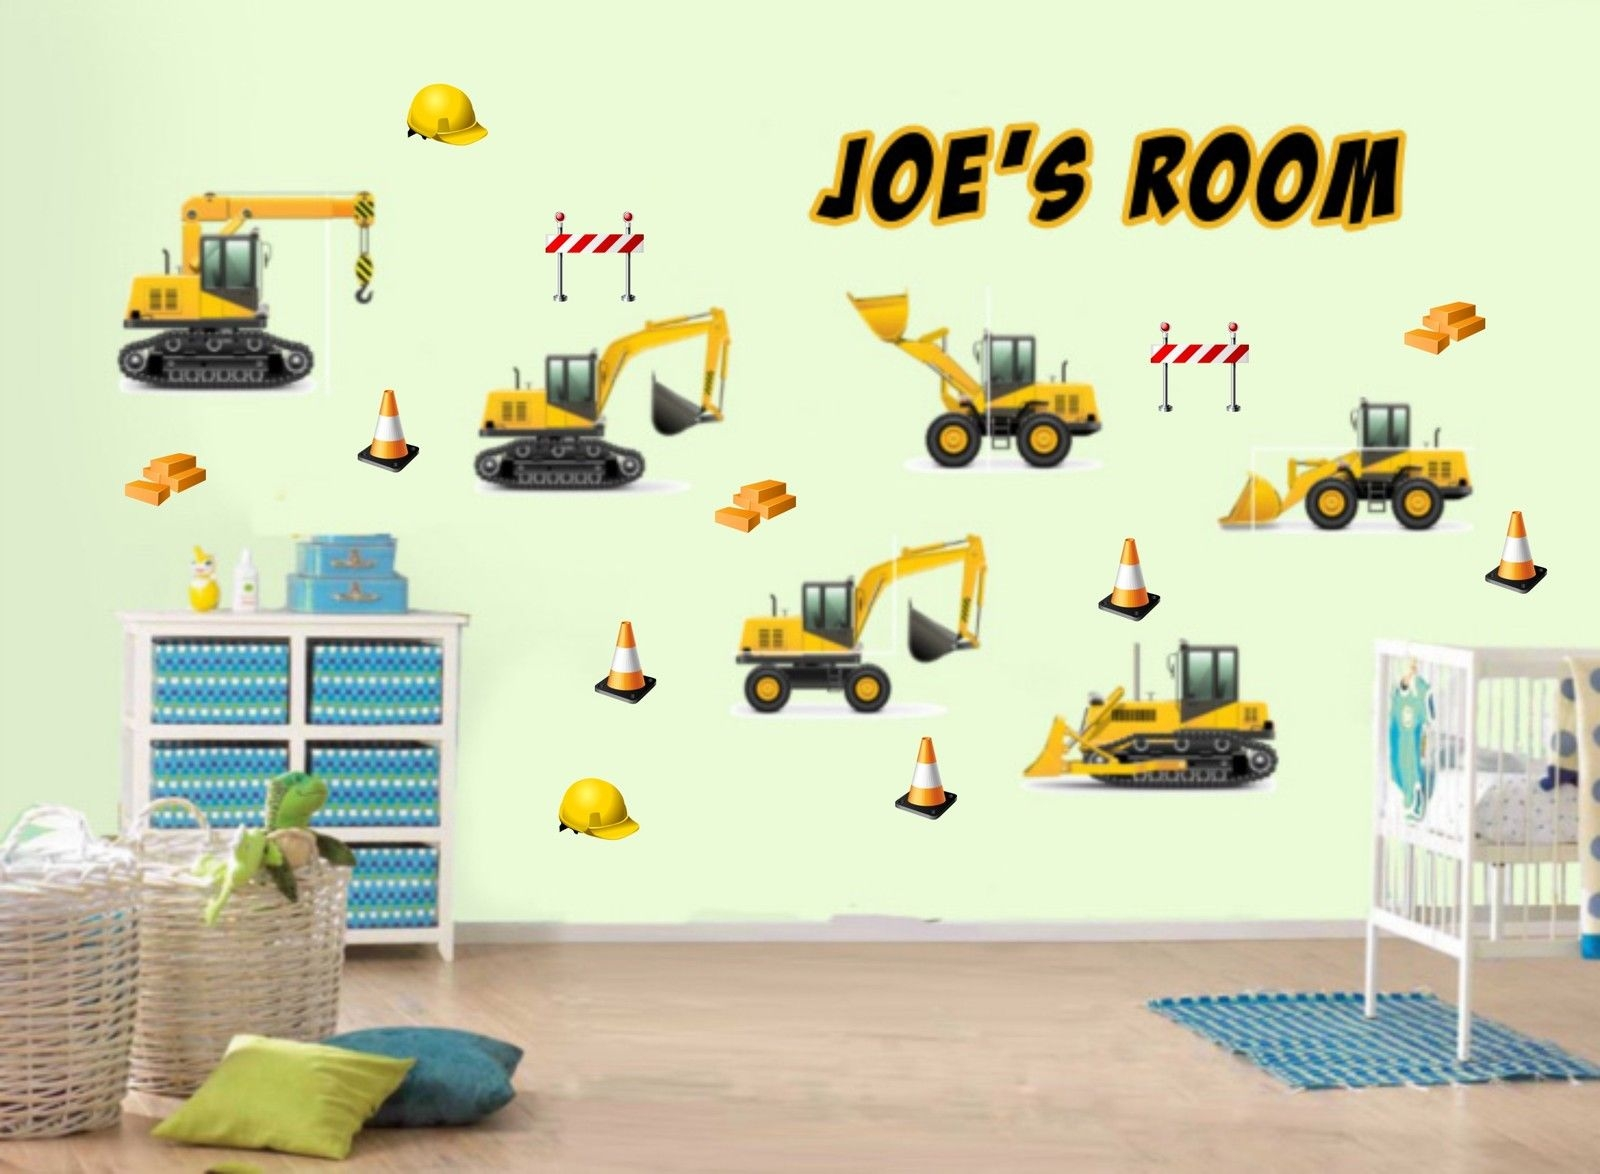 Jcb wall stickers choice image home wall decoration ideas jcb wall stickers image collections home wall decoration ideas jcb wall stickers amipublicfo choice image amipublicfo Gallery